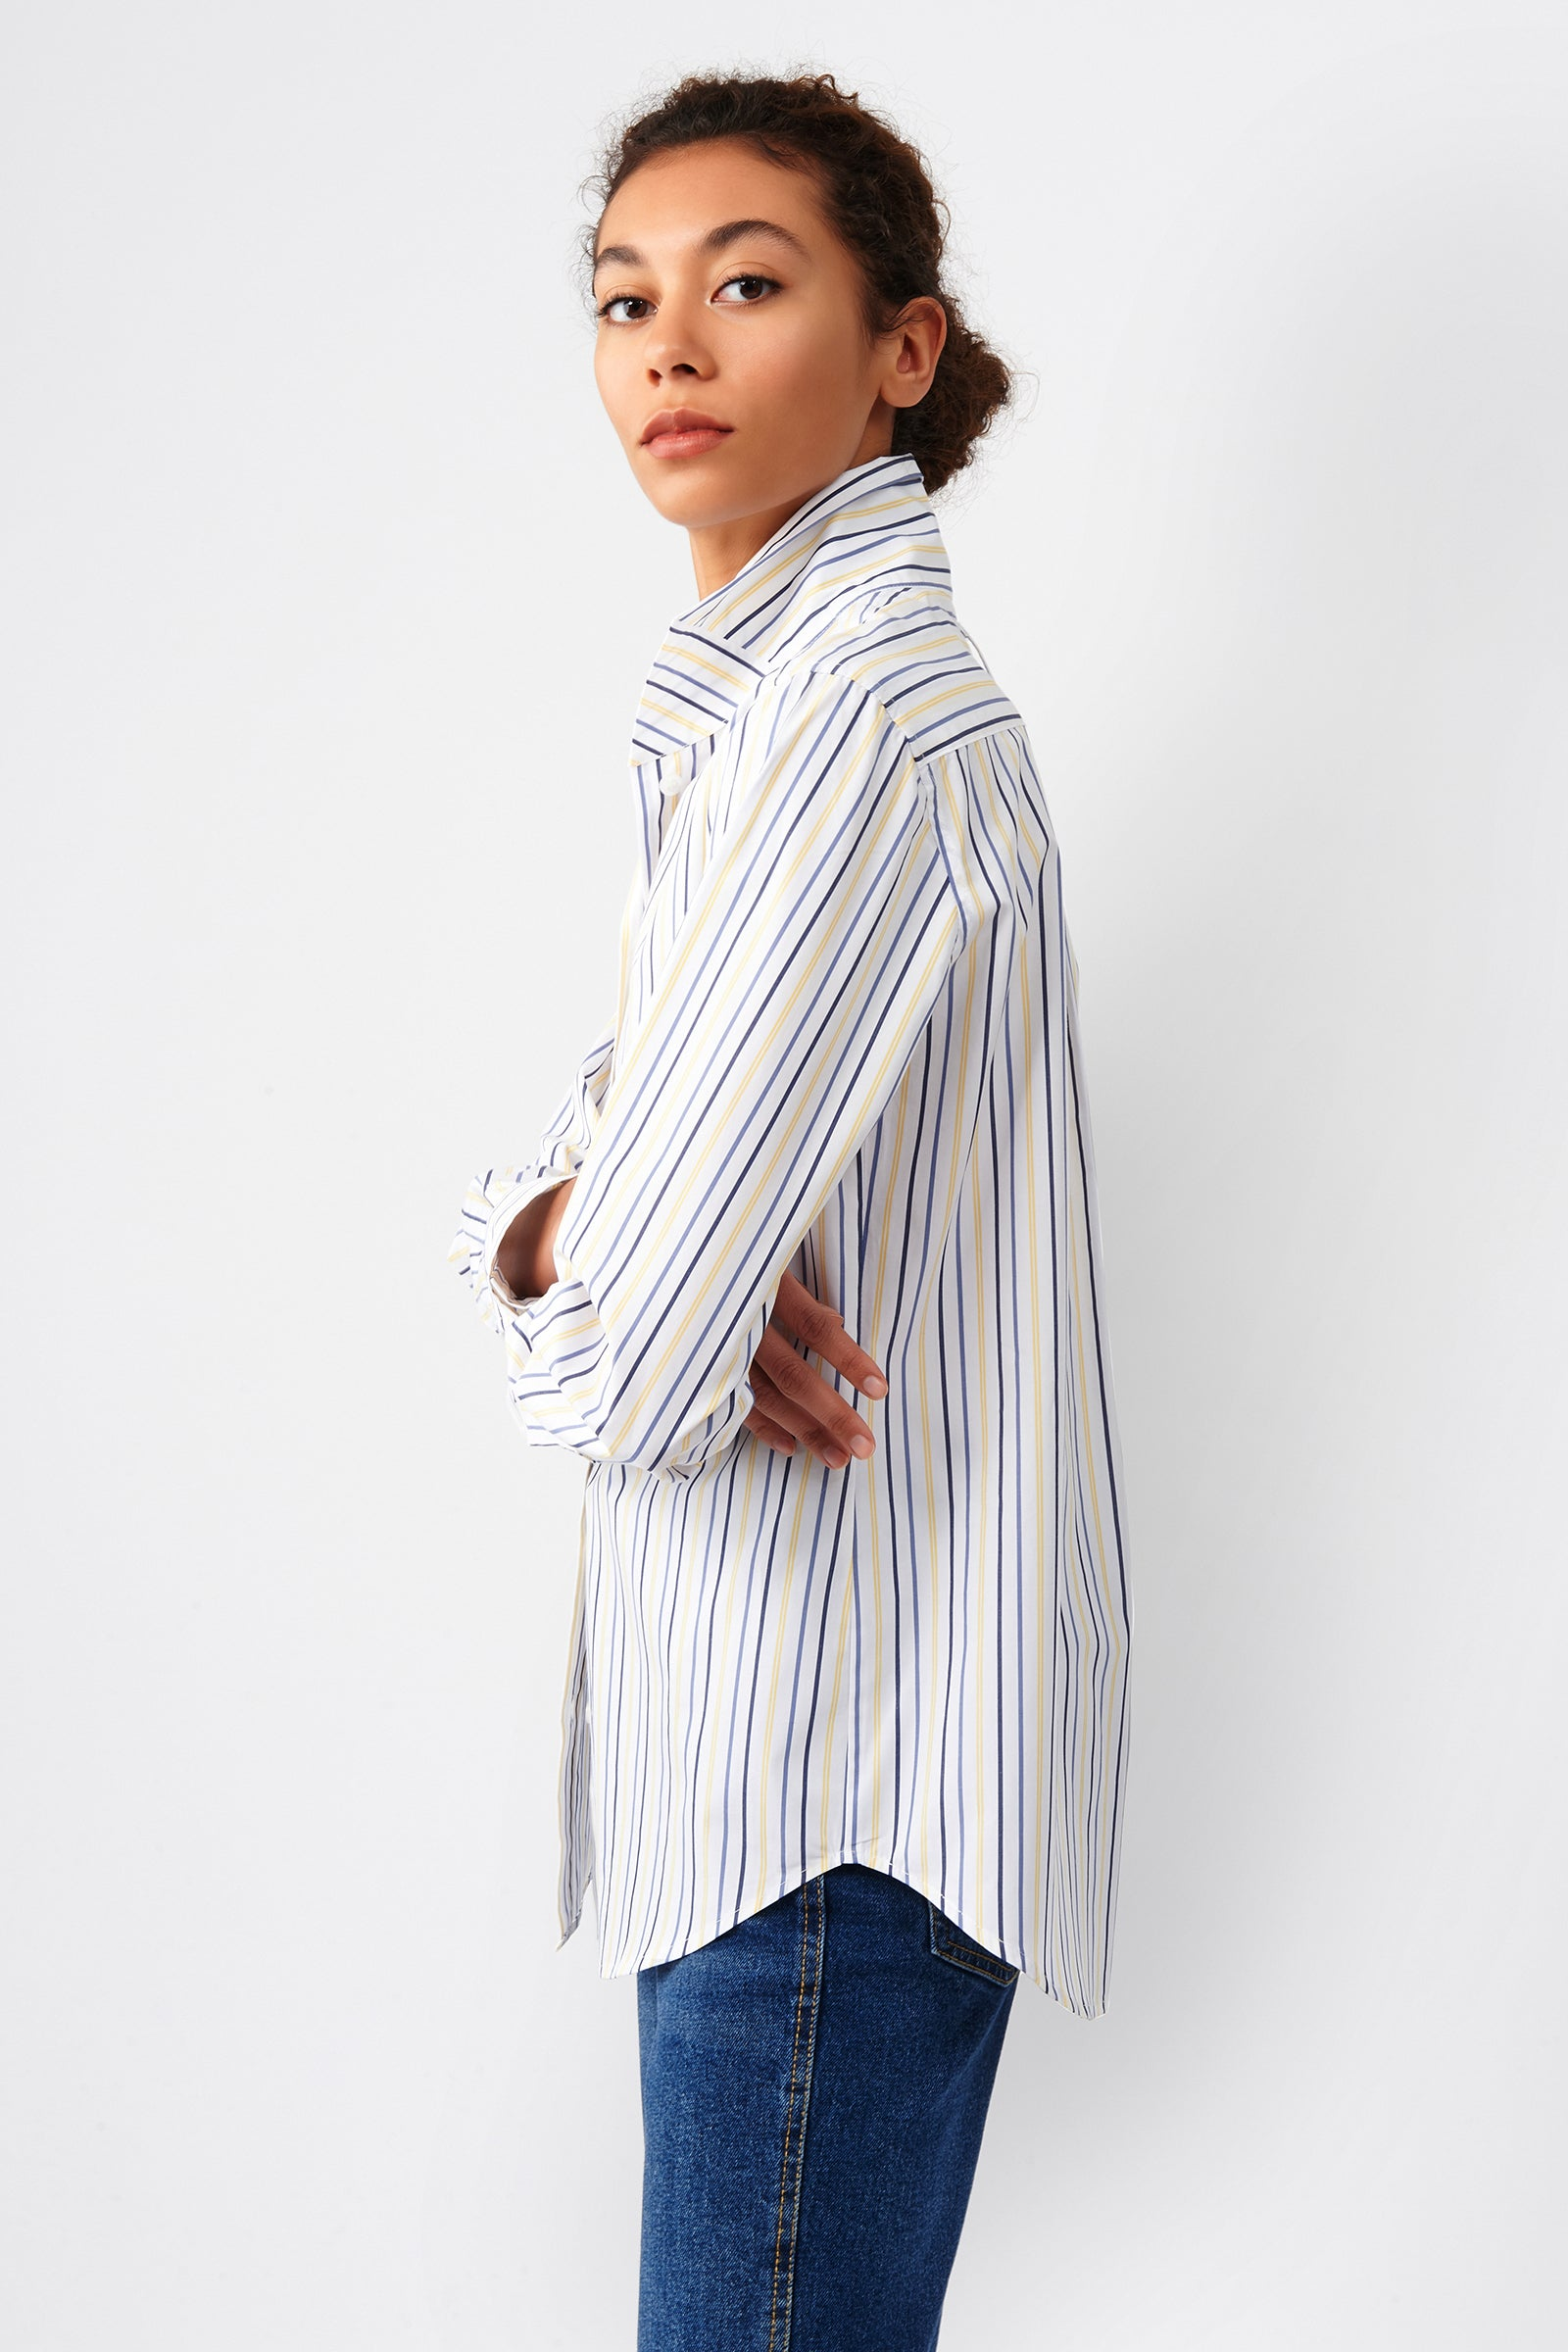 Kal Rieman Ginna Box Pleat Shirt in Yellow Multi Stripe on Model Side View